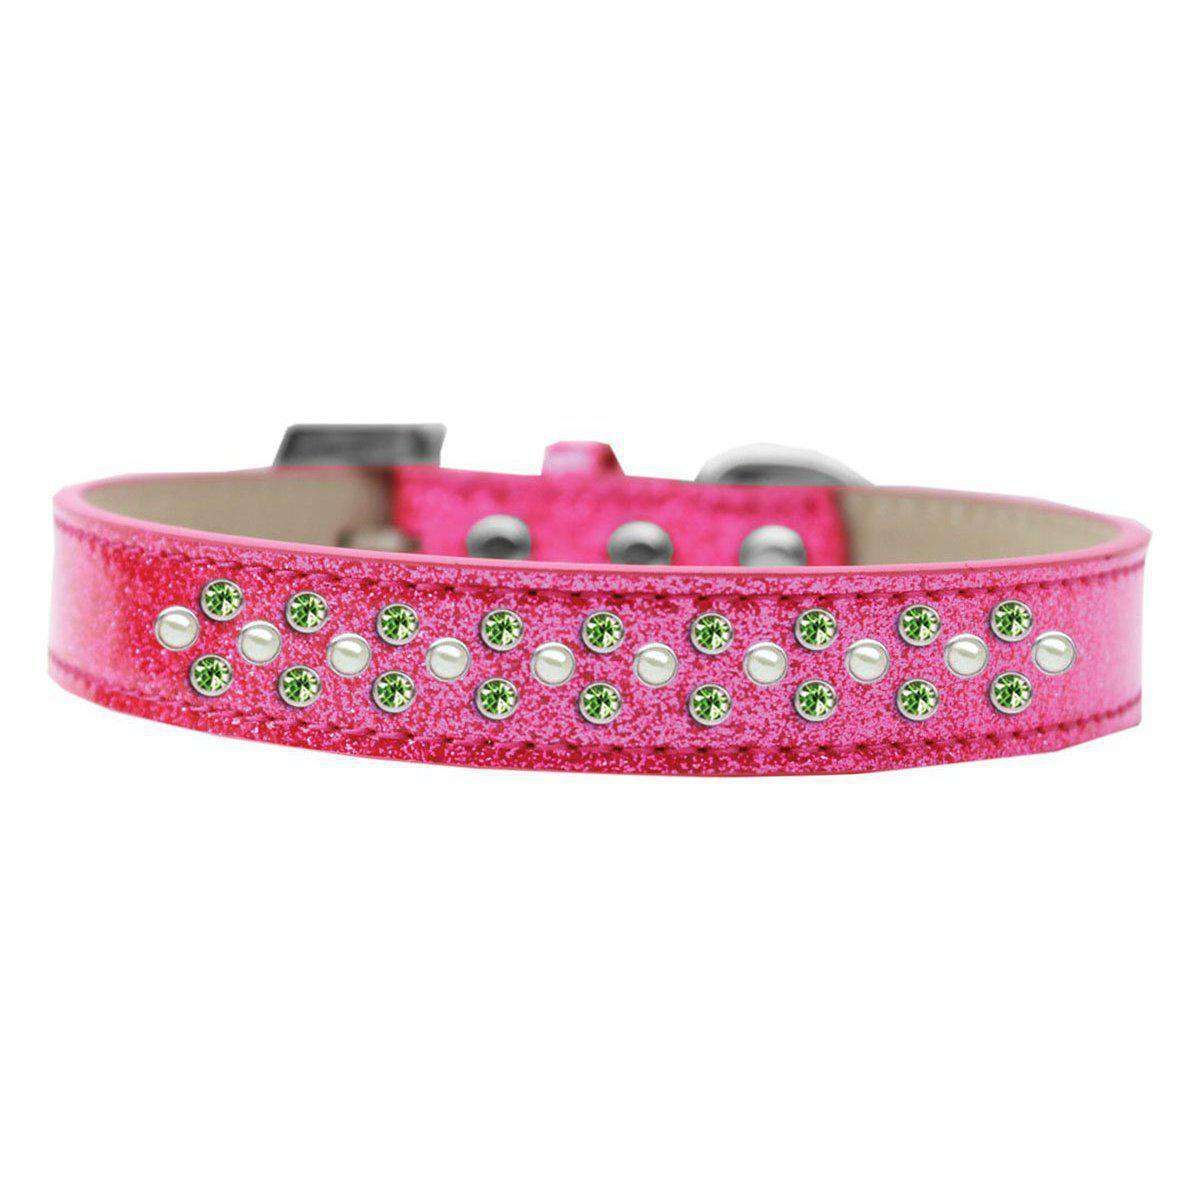 Mirage Pet Products Sprinkles Ice Cream Dog Collar Pearl And Lime Green Crystals Size 16 - Pink-Mirage Pet Products-DirtyFurClothing